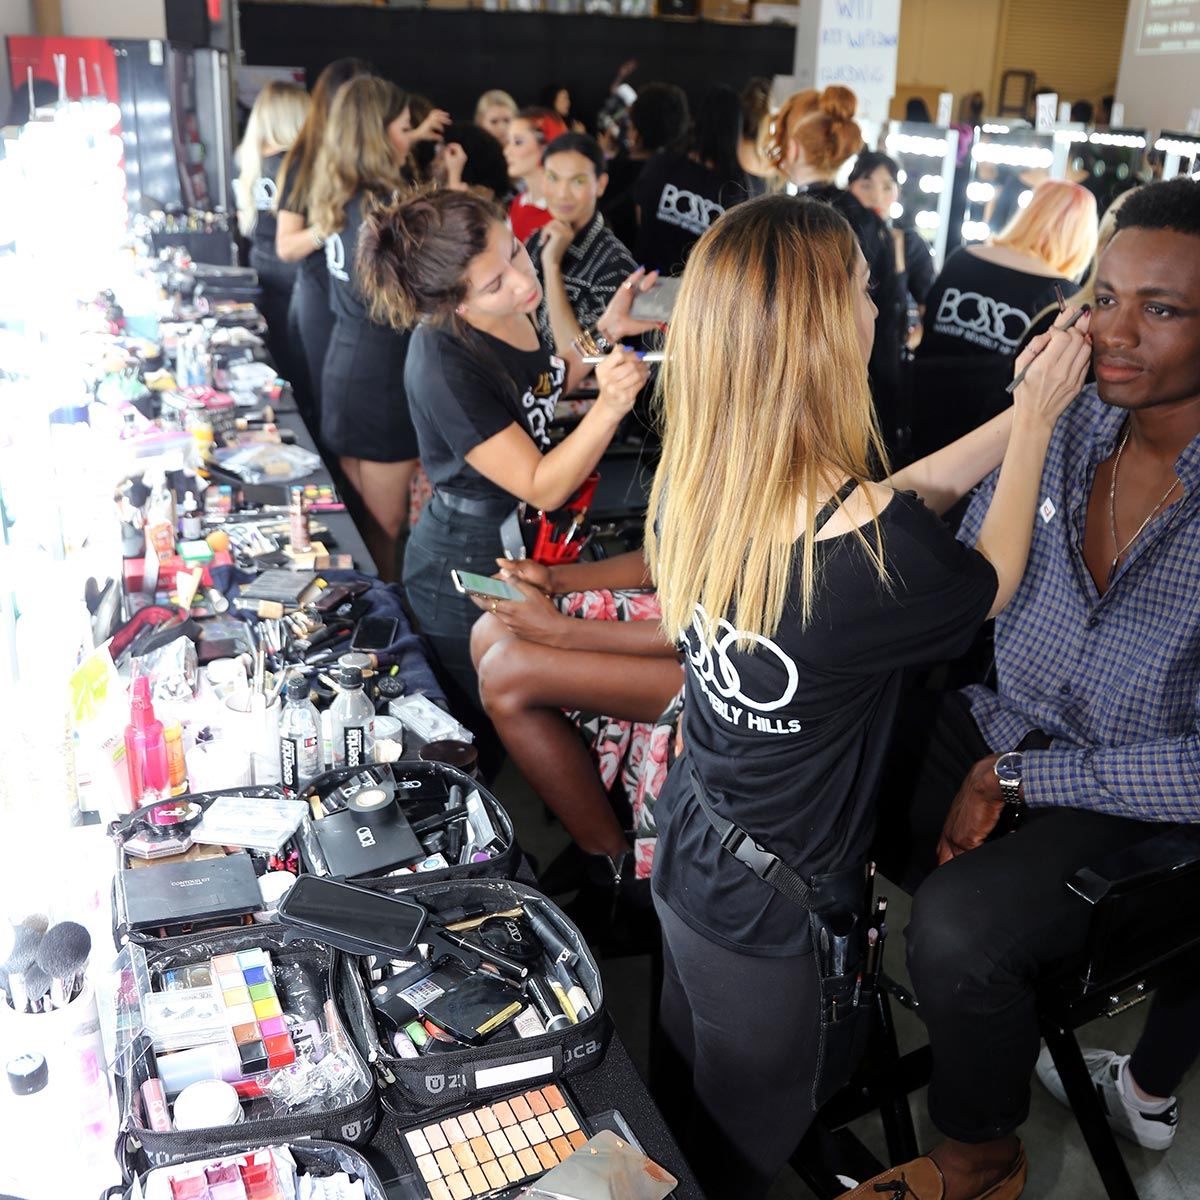 School For Makeup Artists